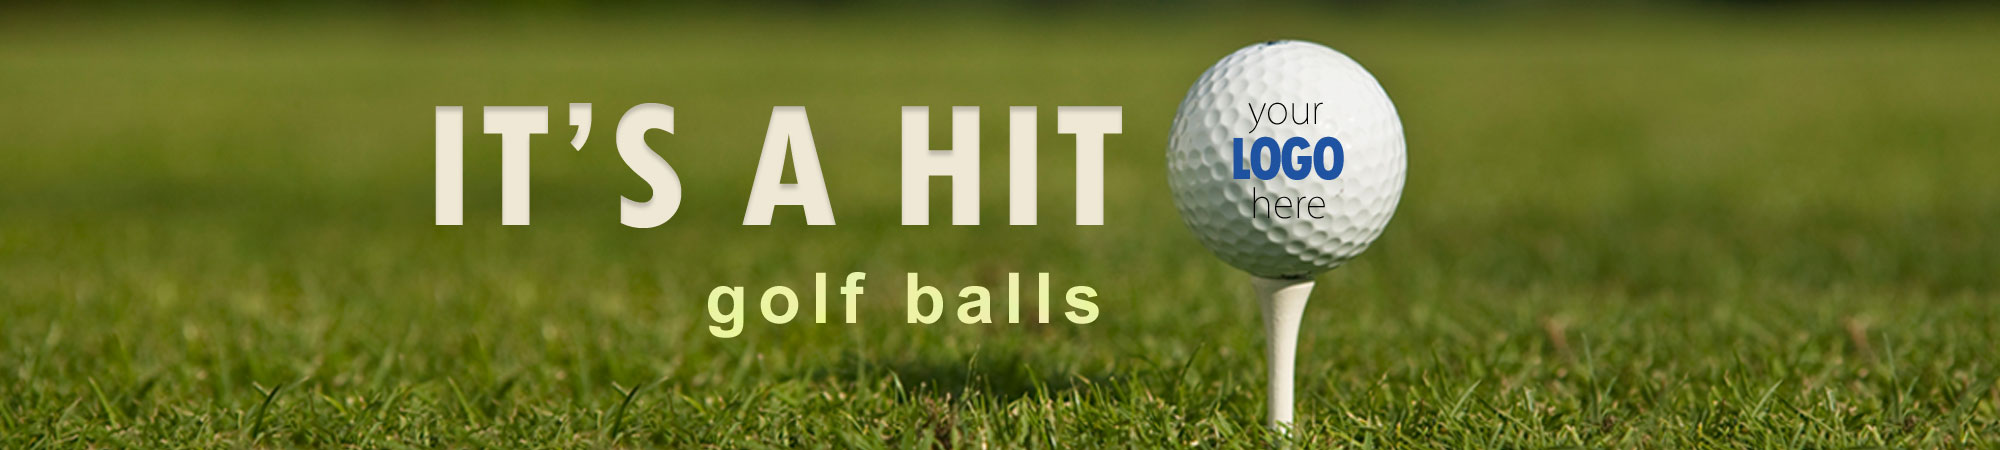 Golf Gifts Canada, Promotional Products Golf, Promotional Items Golf, Giveaways Golf, Corporate Gifts Golf - HOME